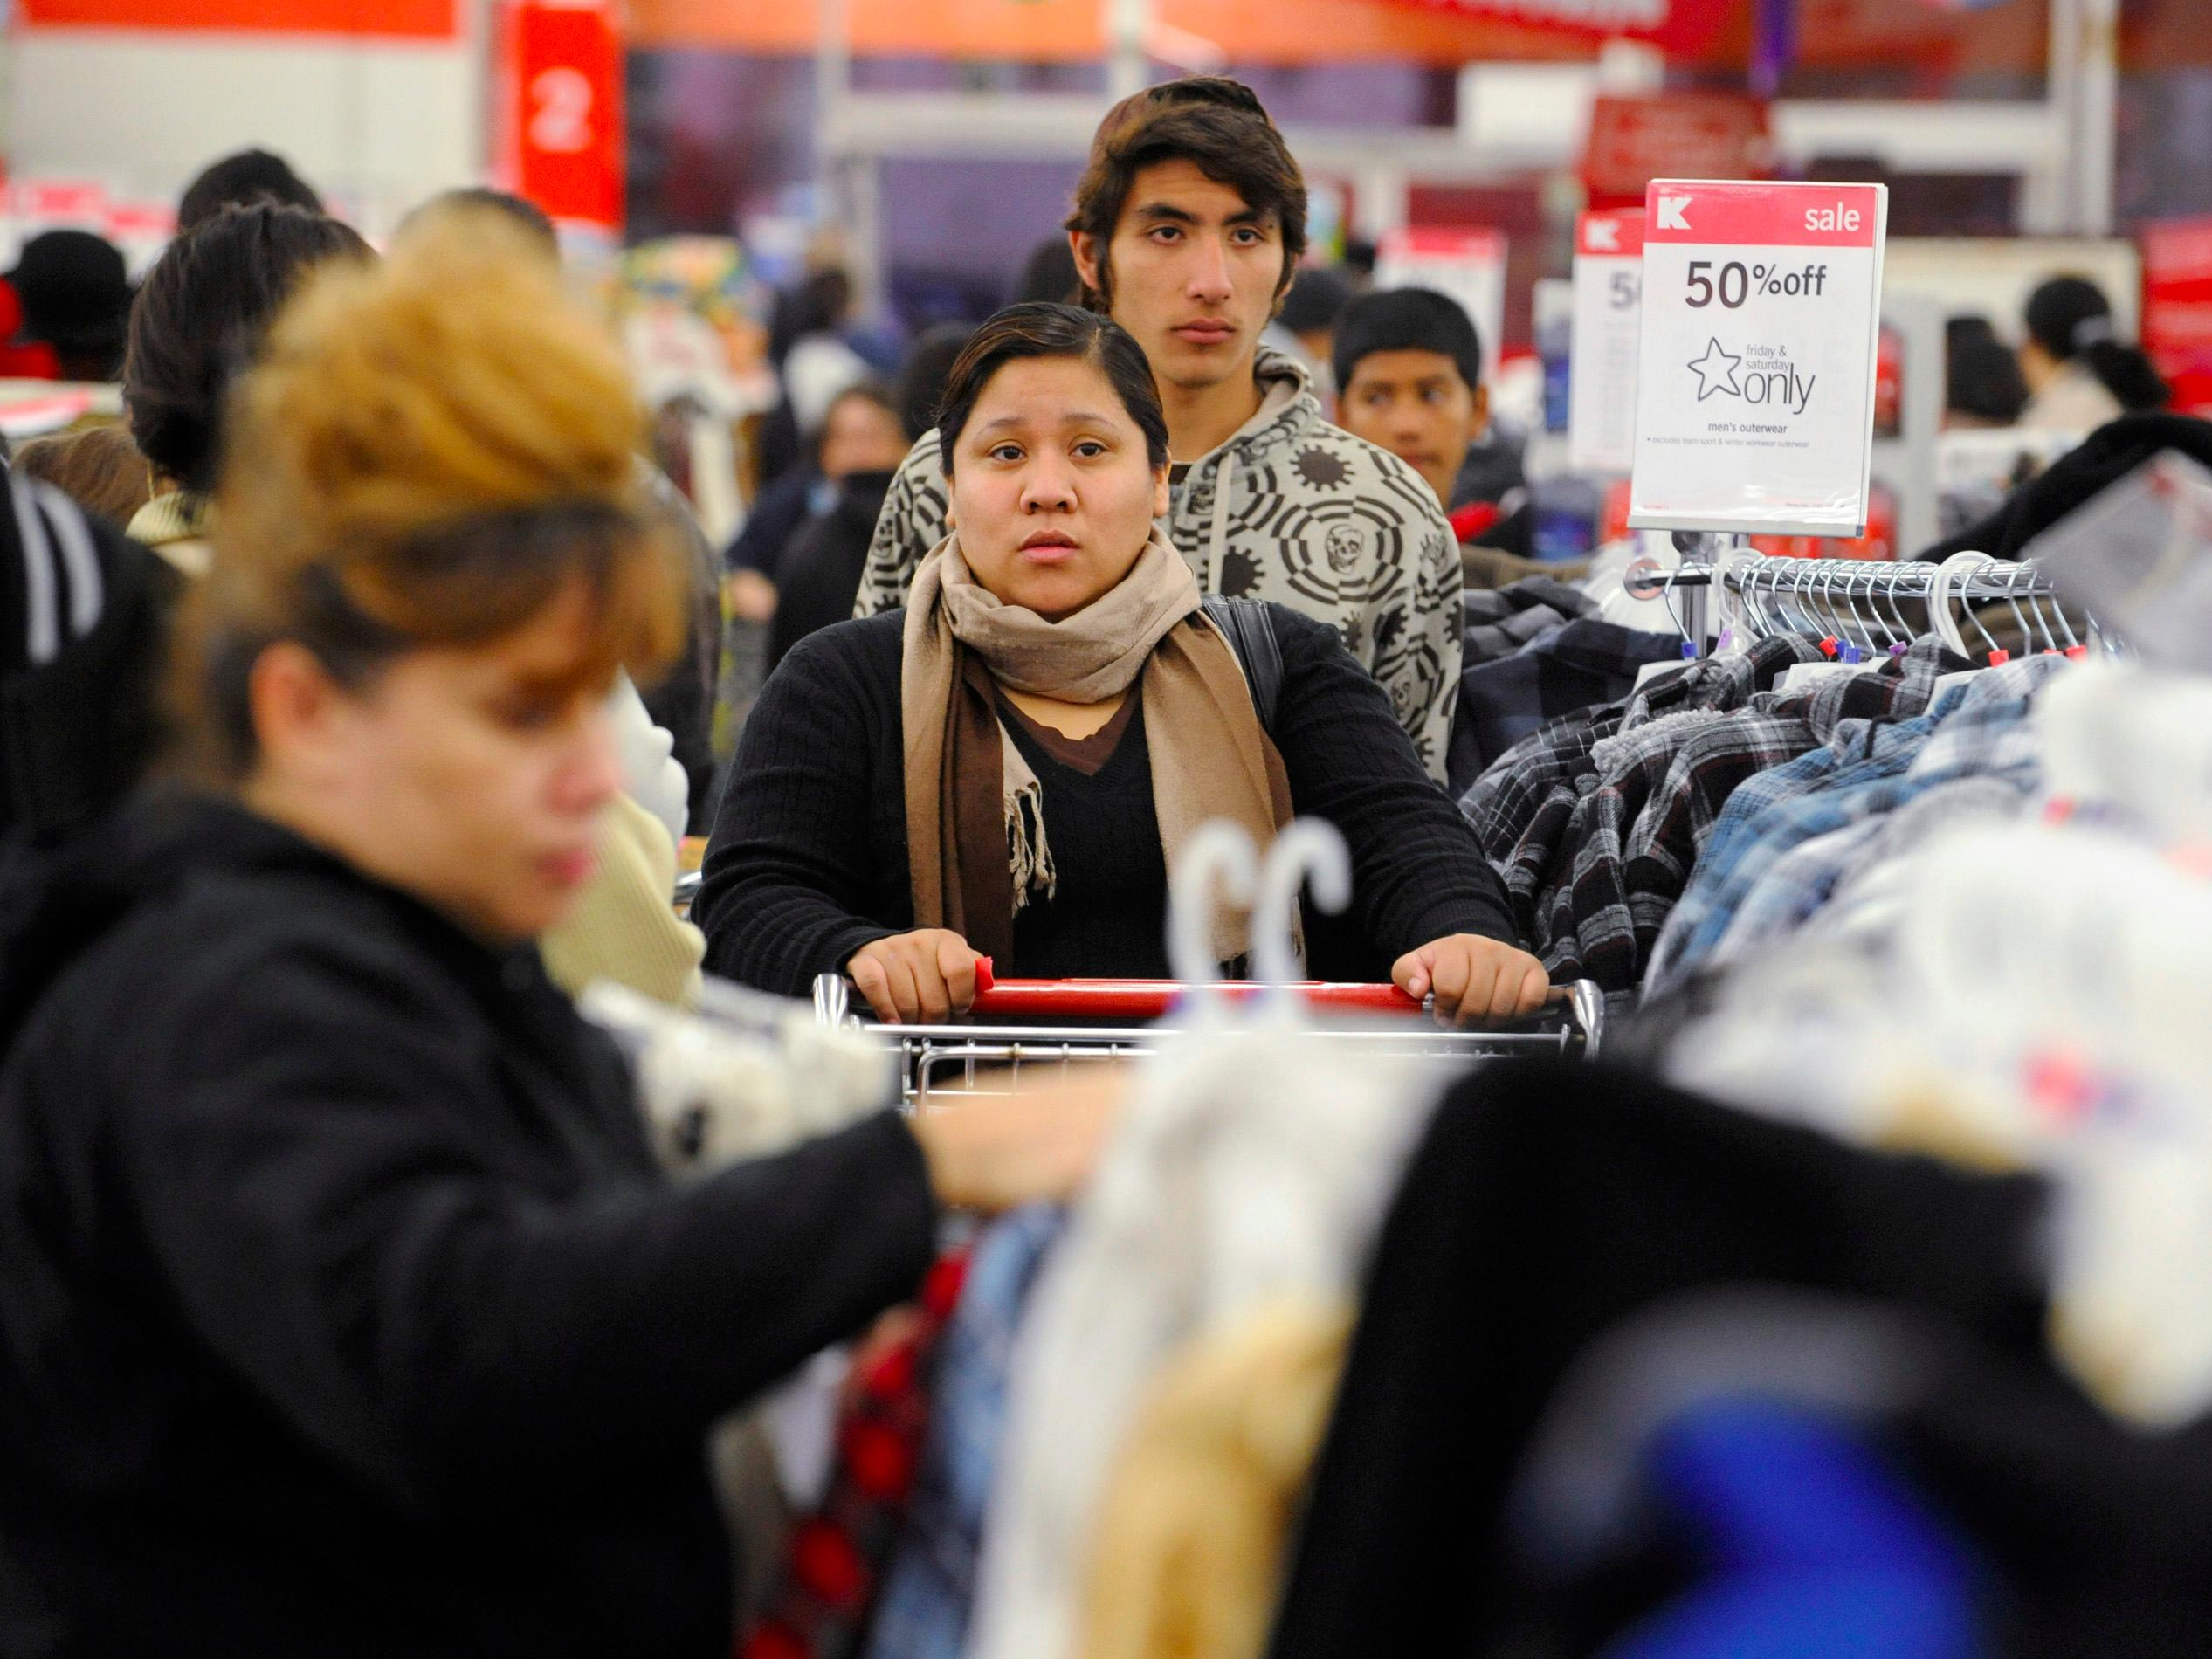 Kmart president says his workers looked forward to a 6 a.m. shift on Thanksgiving